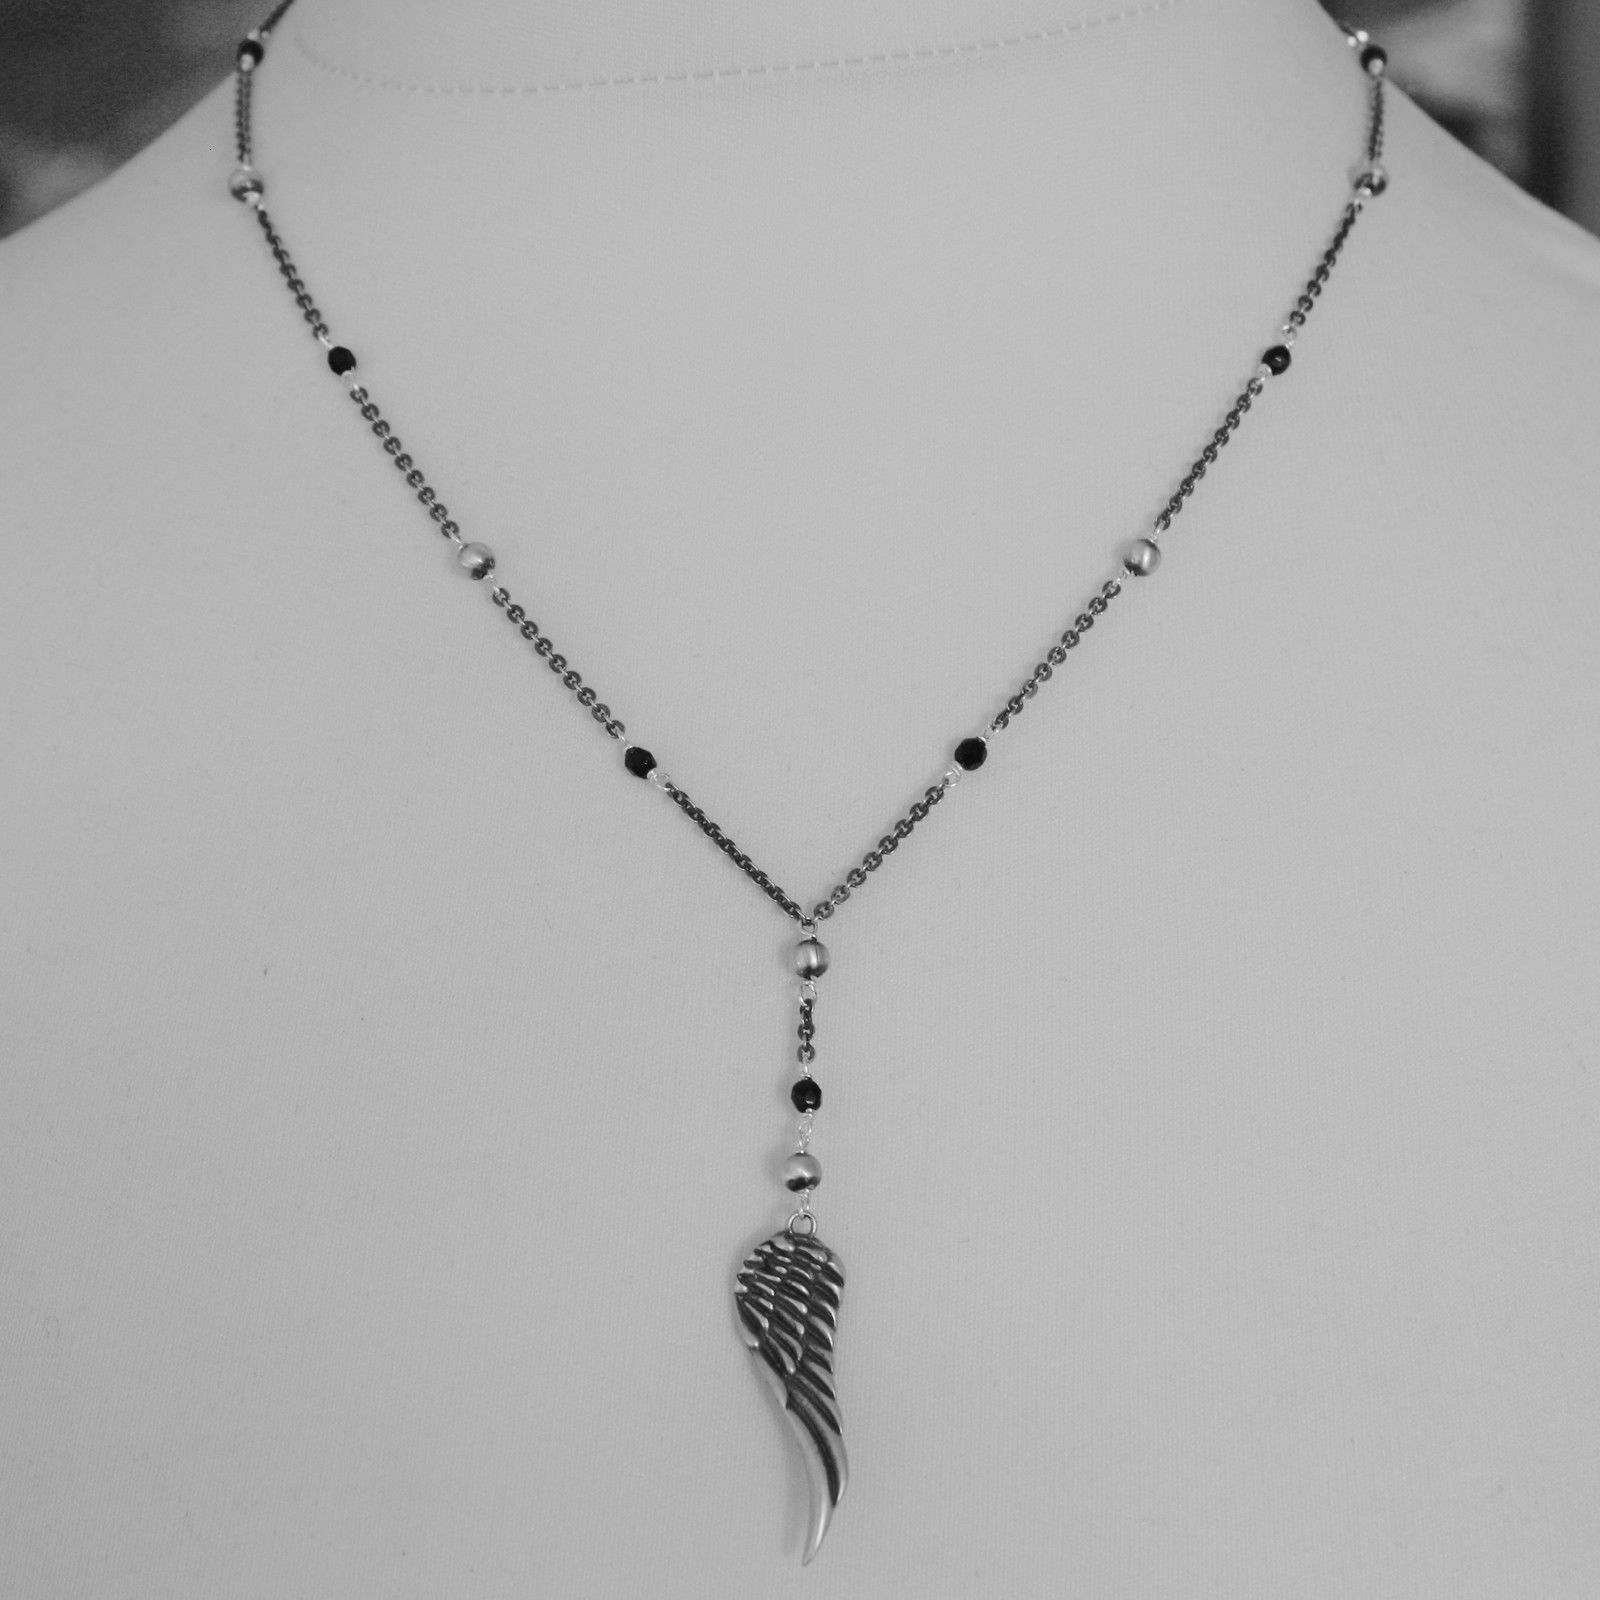 925 BURNISHED SILVER FEATHER WING BLACK NECKLACE WITH PENDANT MADE IN ITALY